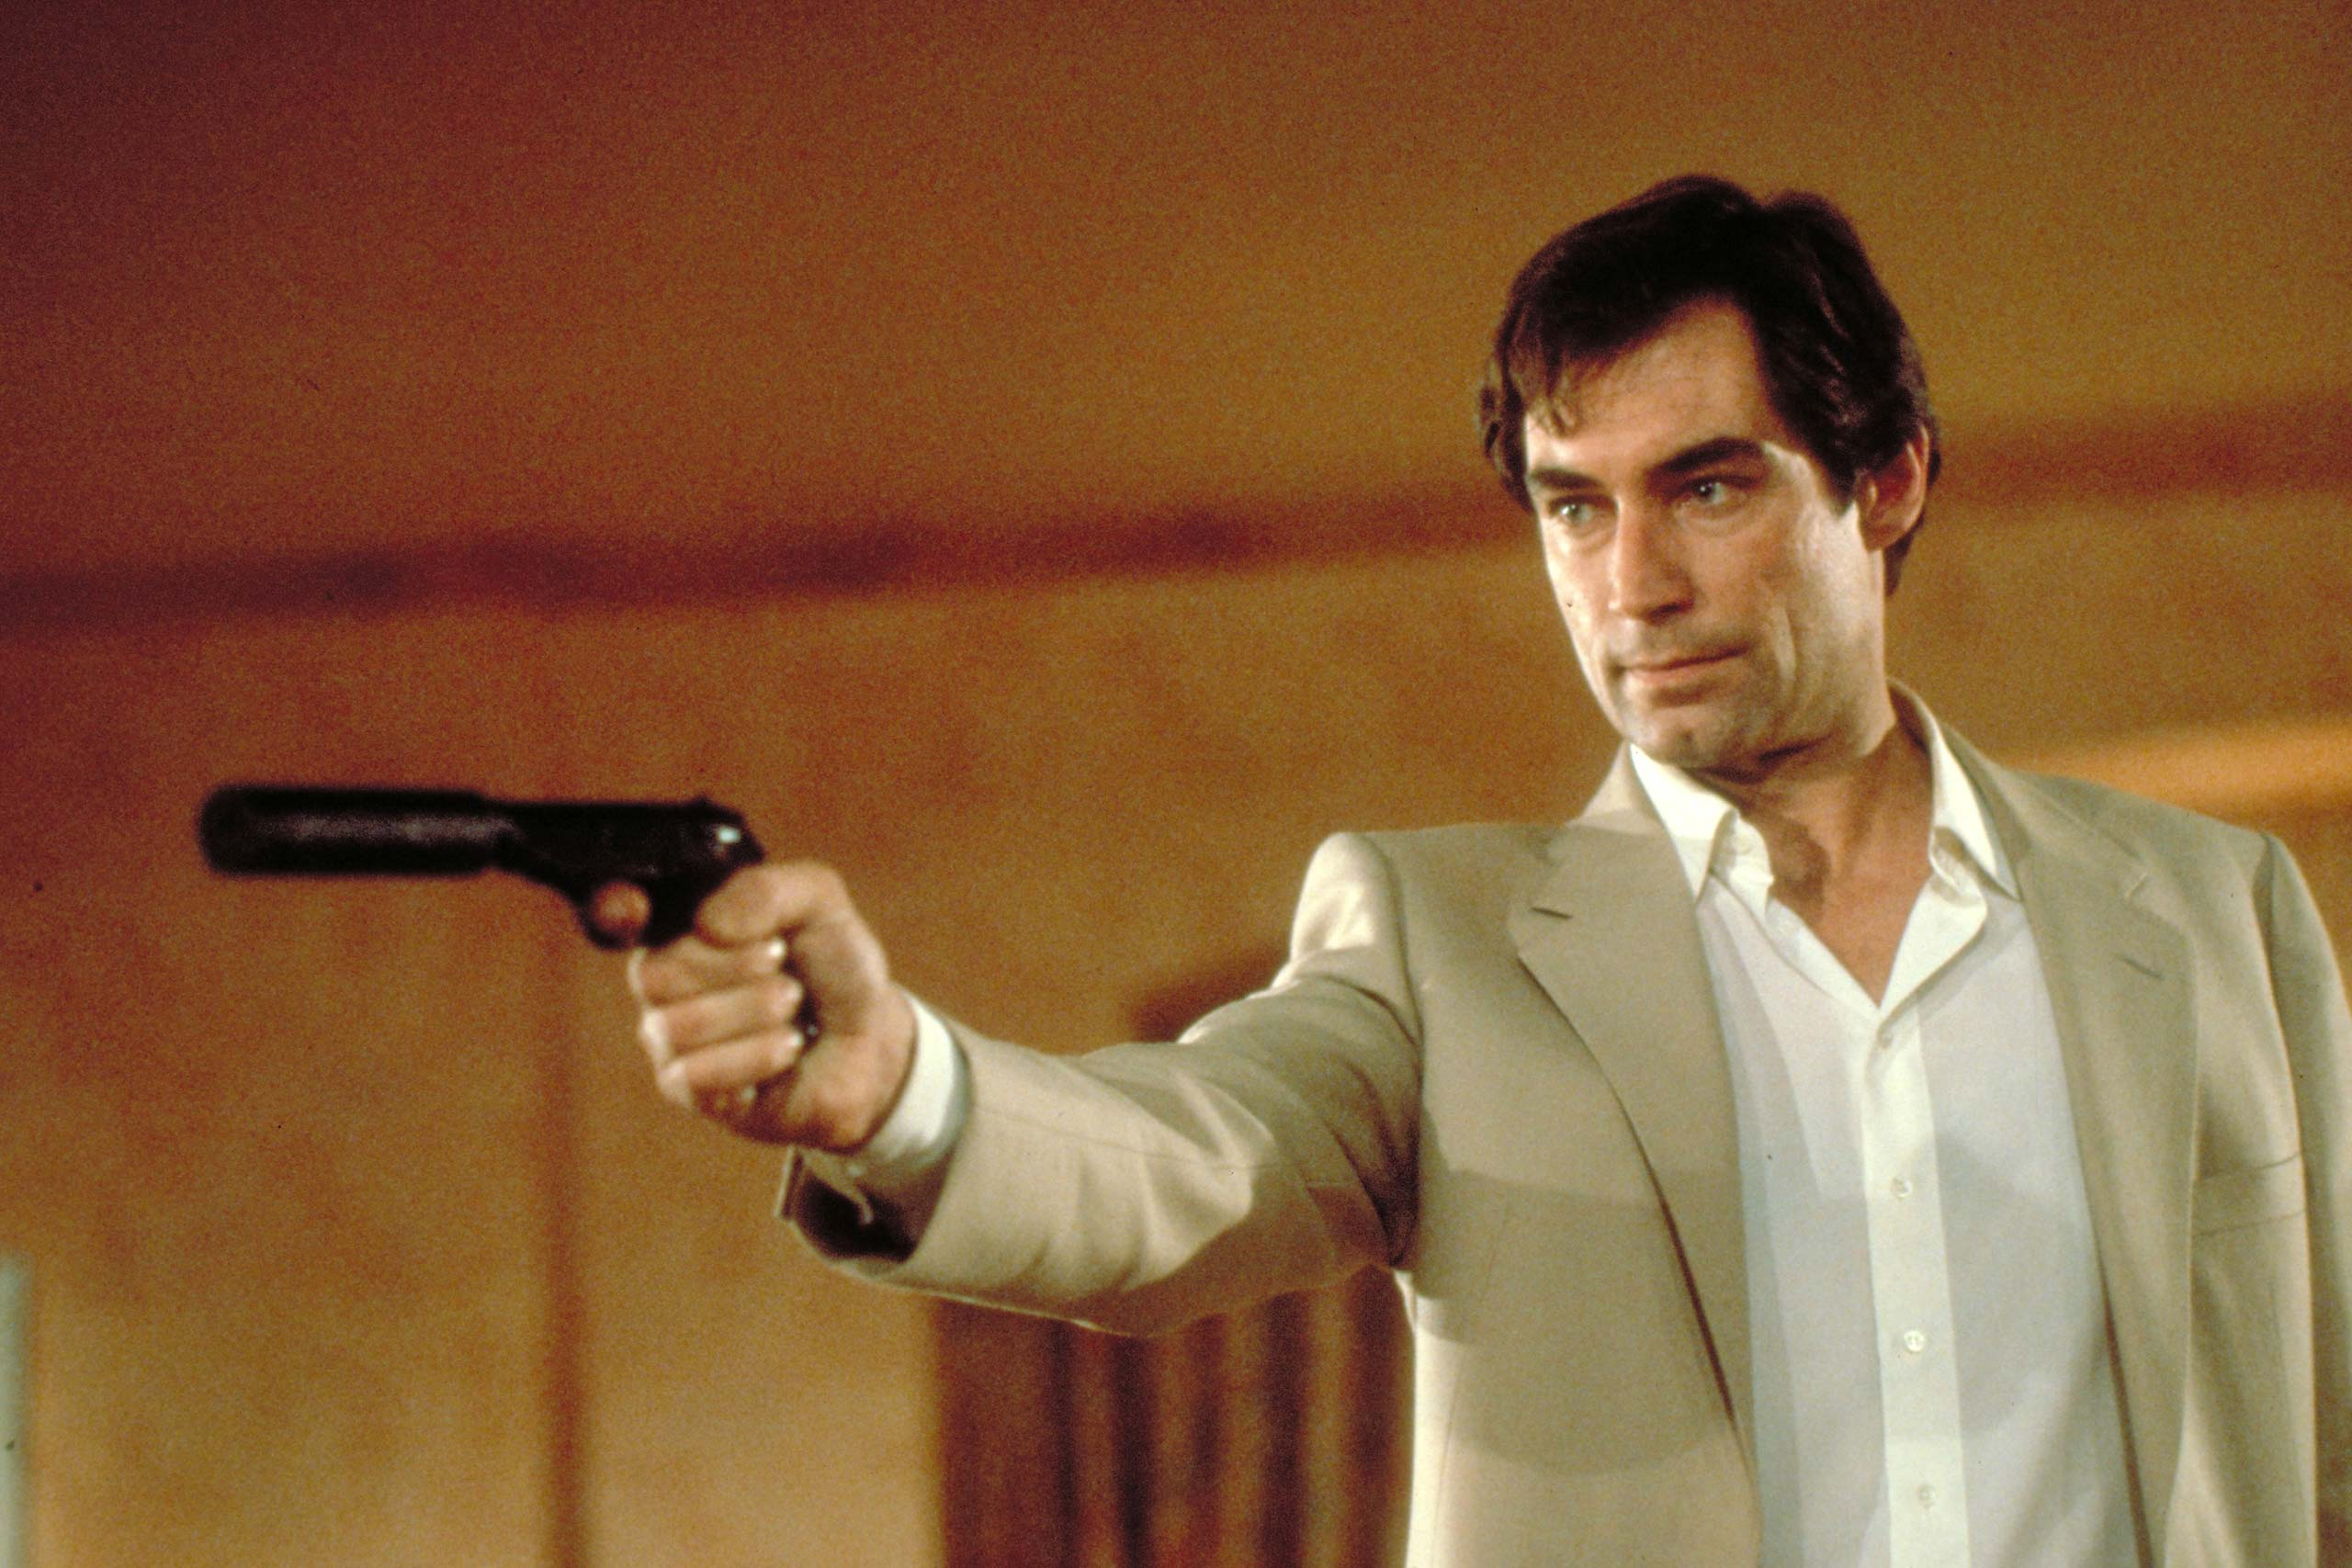 <strong><i>The Living Daylights</i> (1987) - Timothy Dalton</strong>